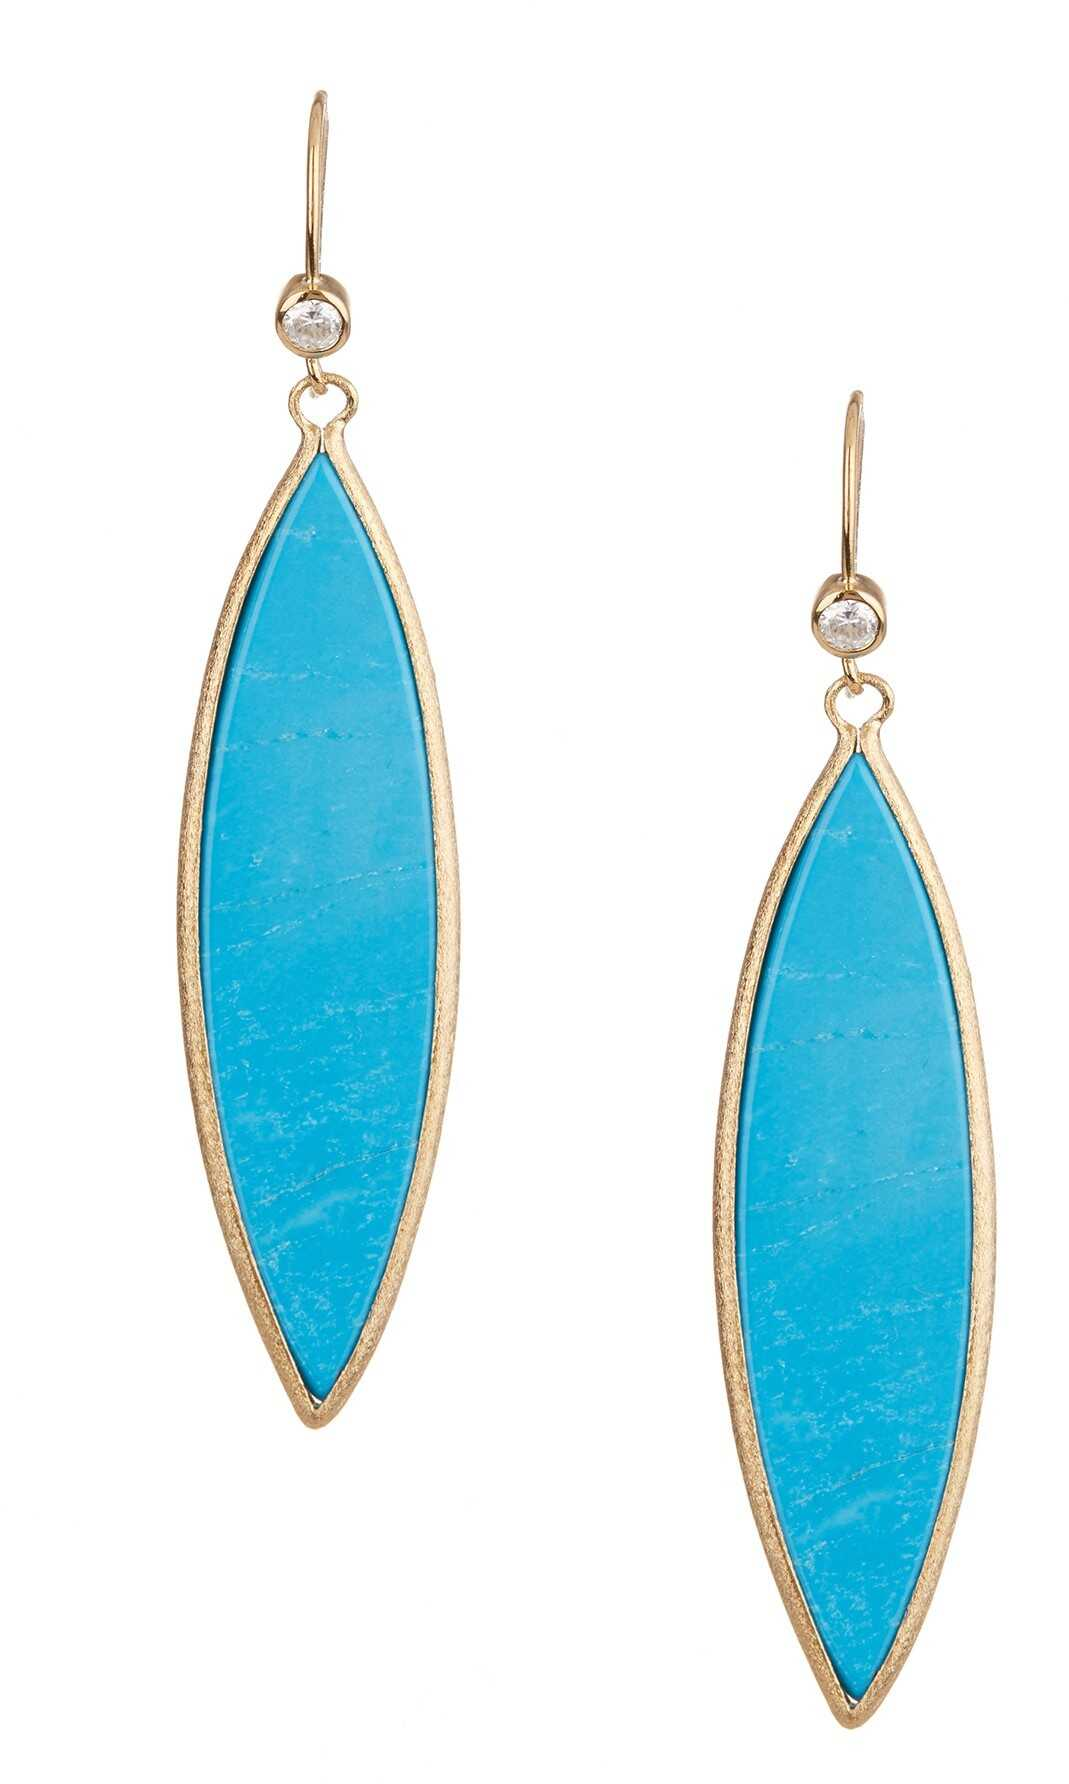 Rivka Friedman 18K Gold Clad Magnesite Marquise Dangle Earrings Blue-Clear